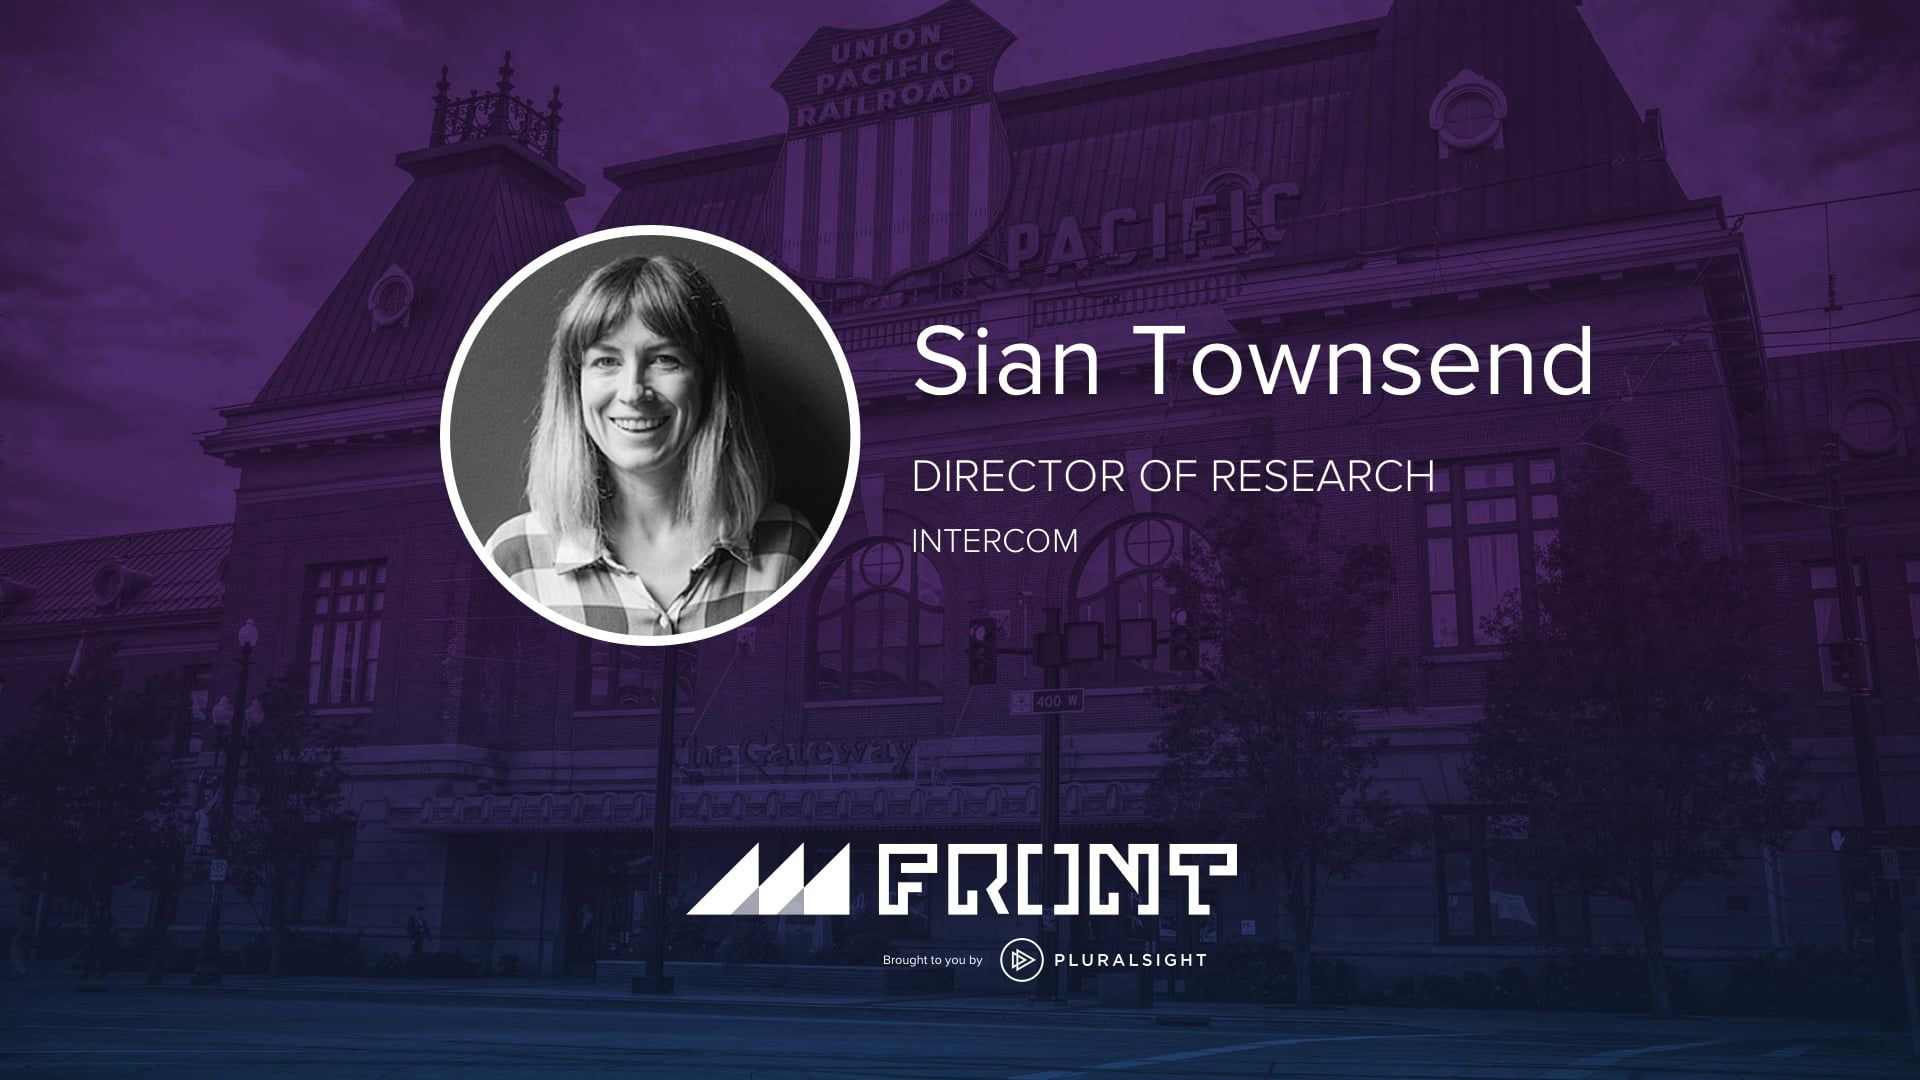 Jobs to be done from doubter to believer by sian townsend